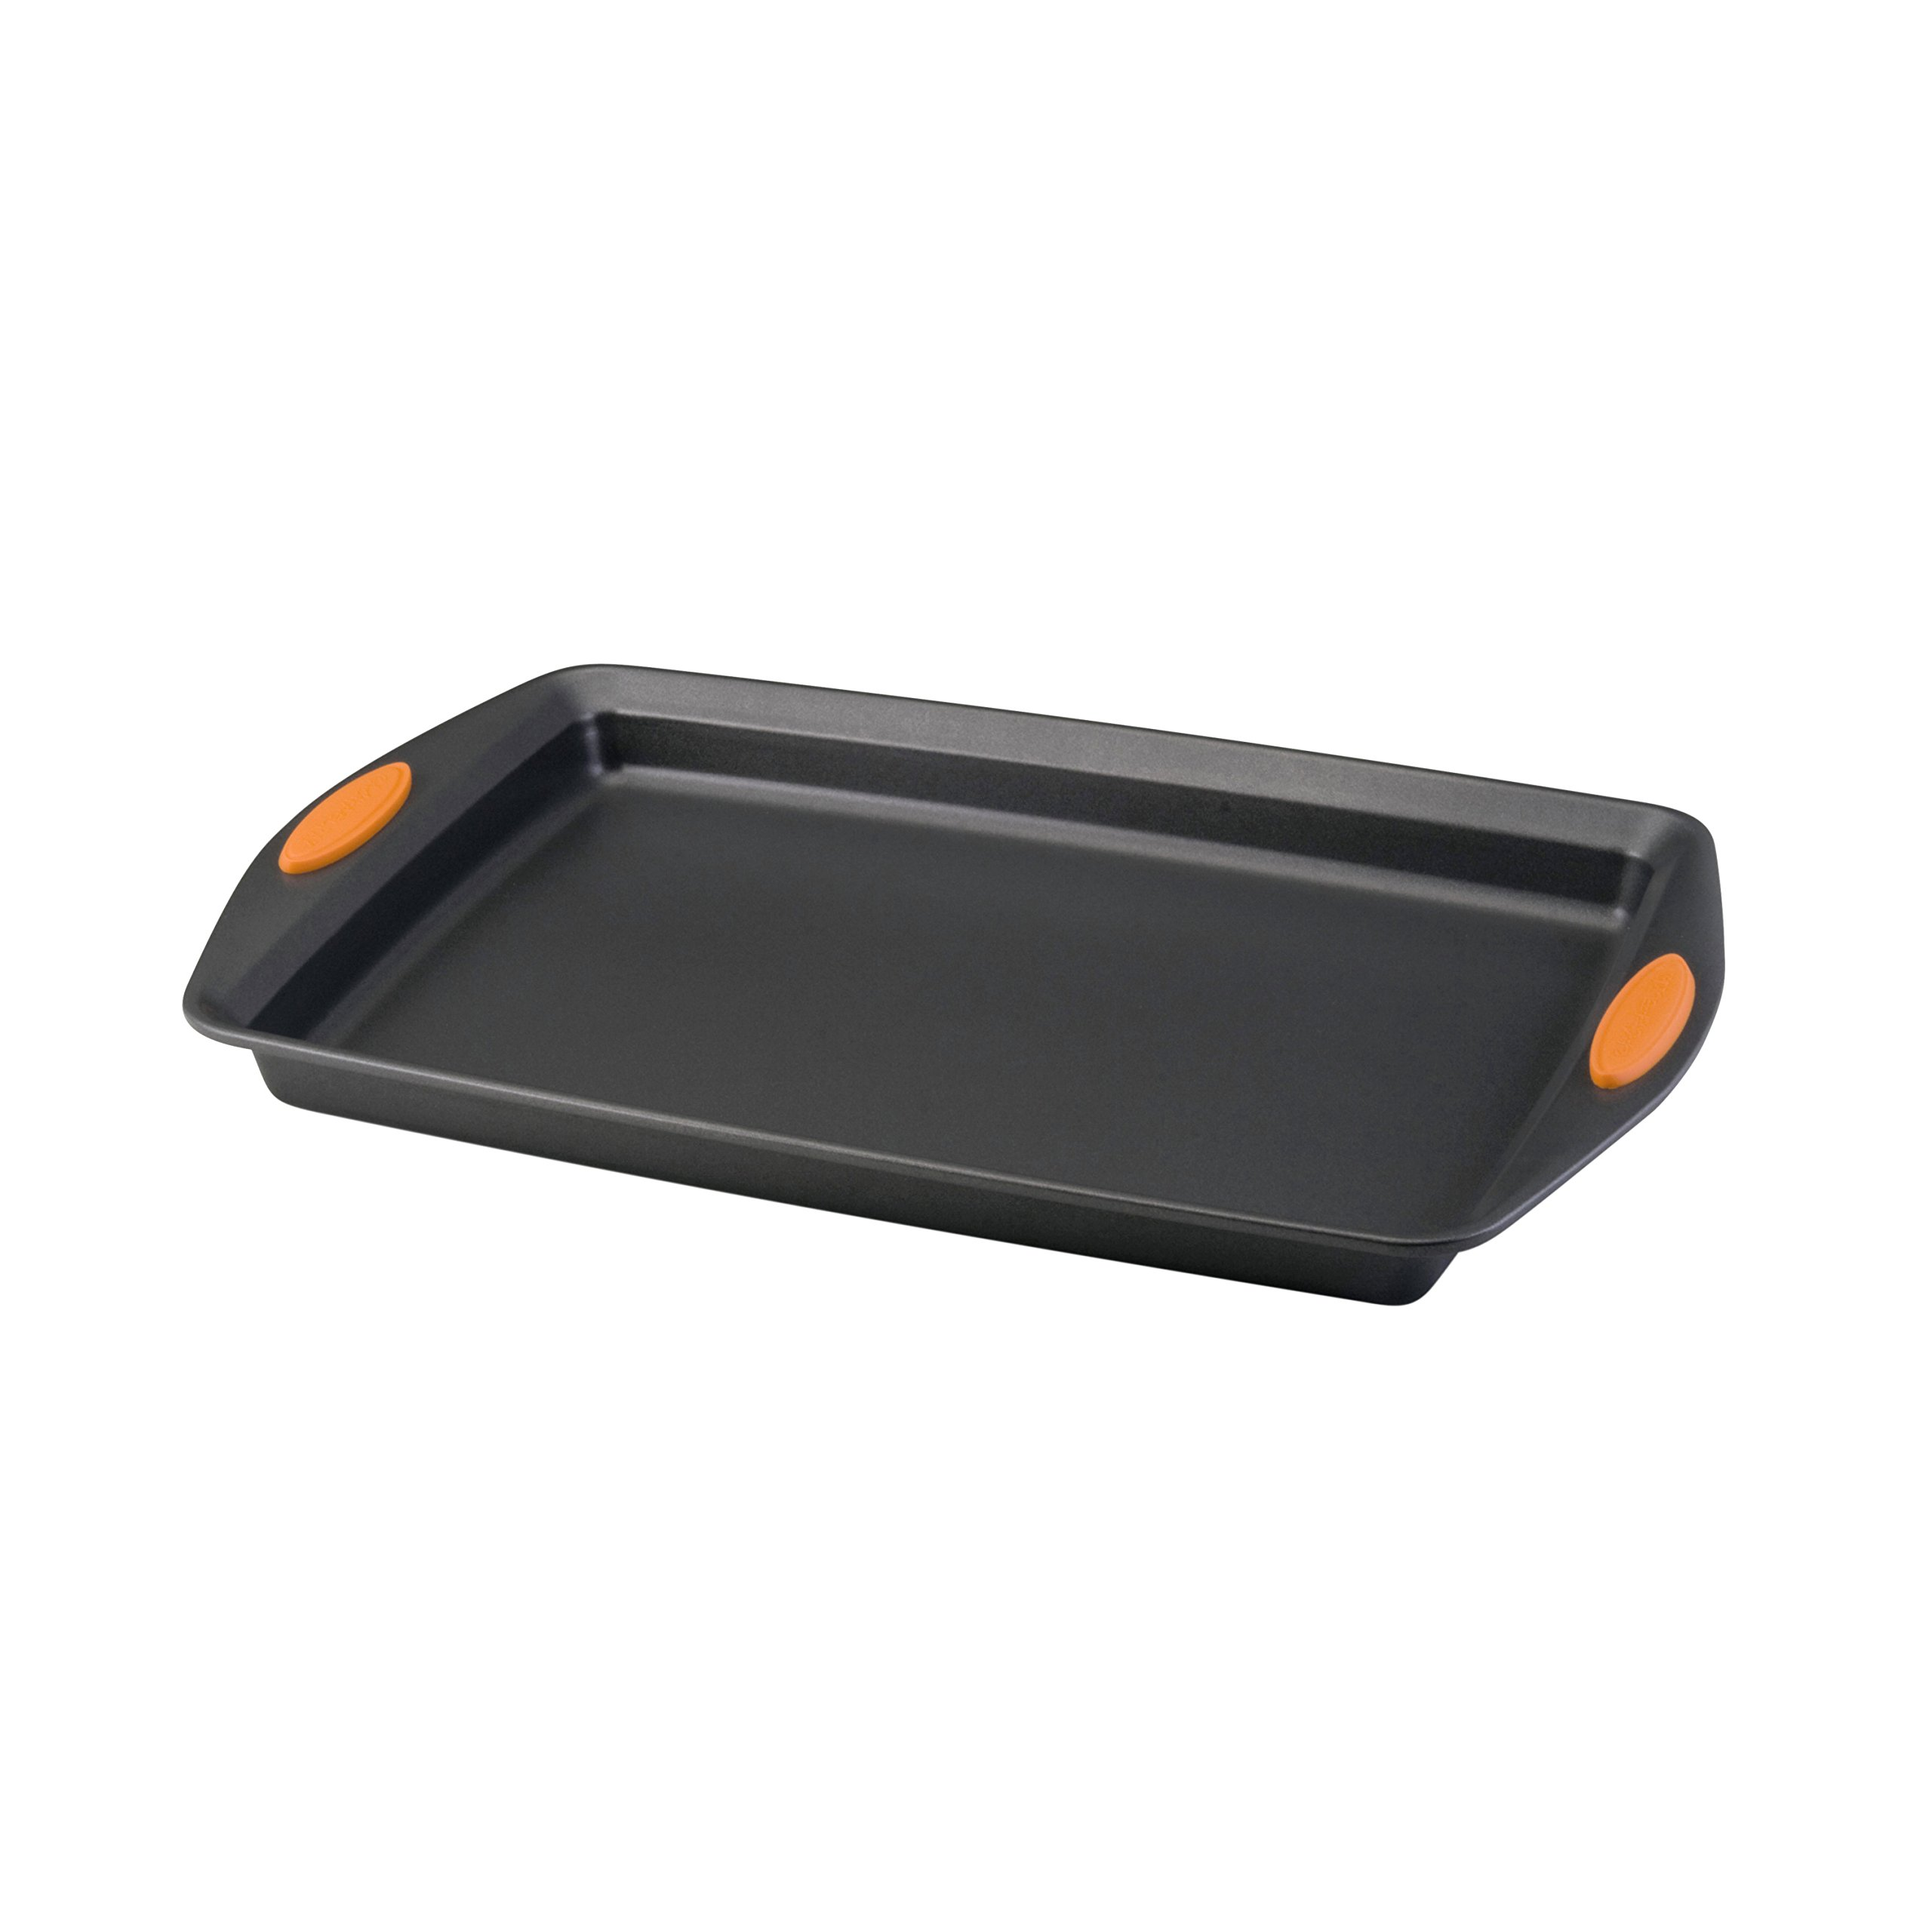 Rachael Ray Yum-o! Nonstick Bakeware 11-Inch by 17-Inch Oven Lovin' Crispy Sheet Cookie Pan, Gray with Orange Handles